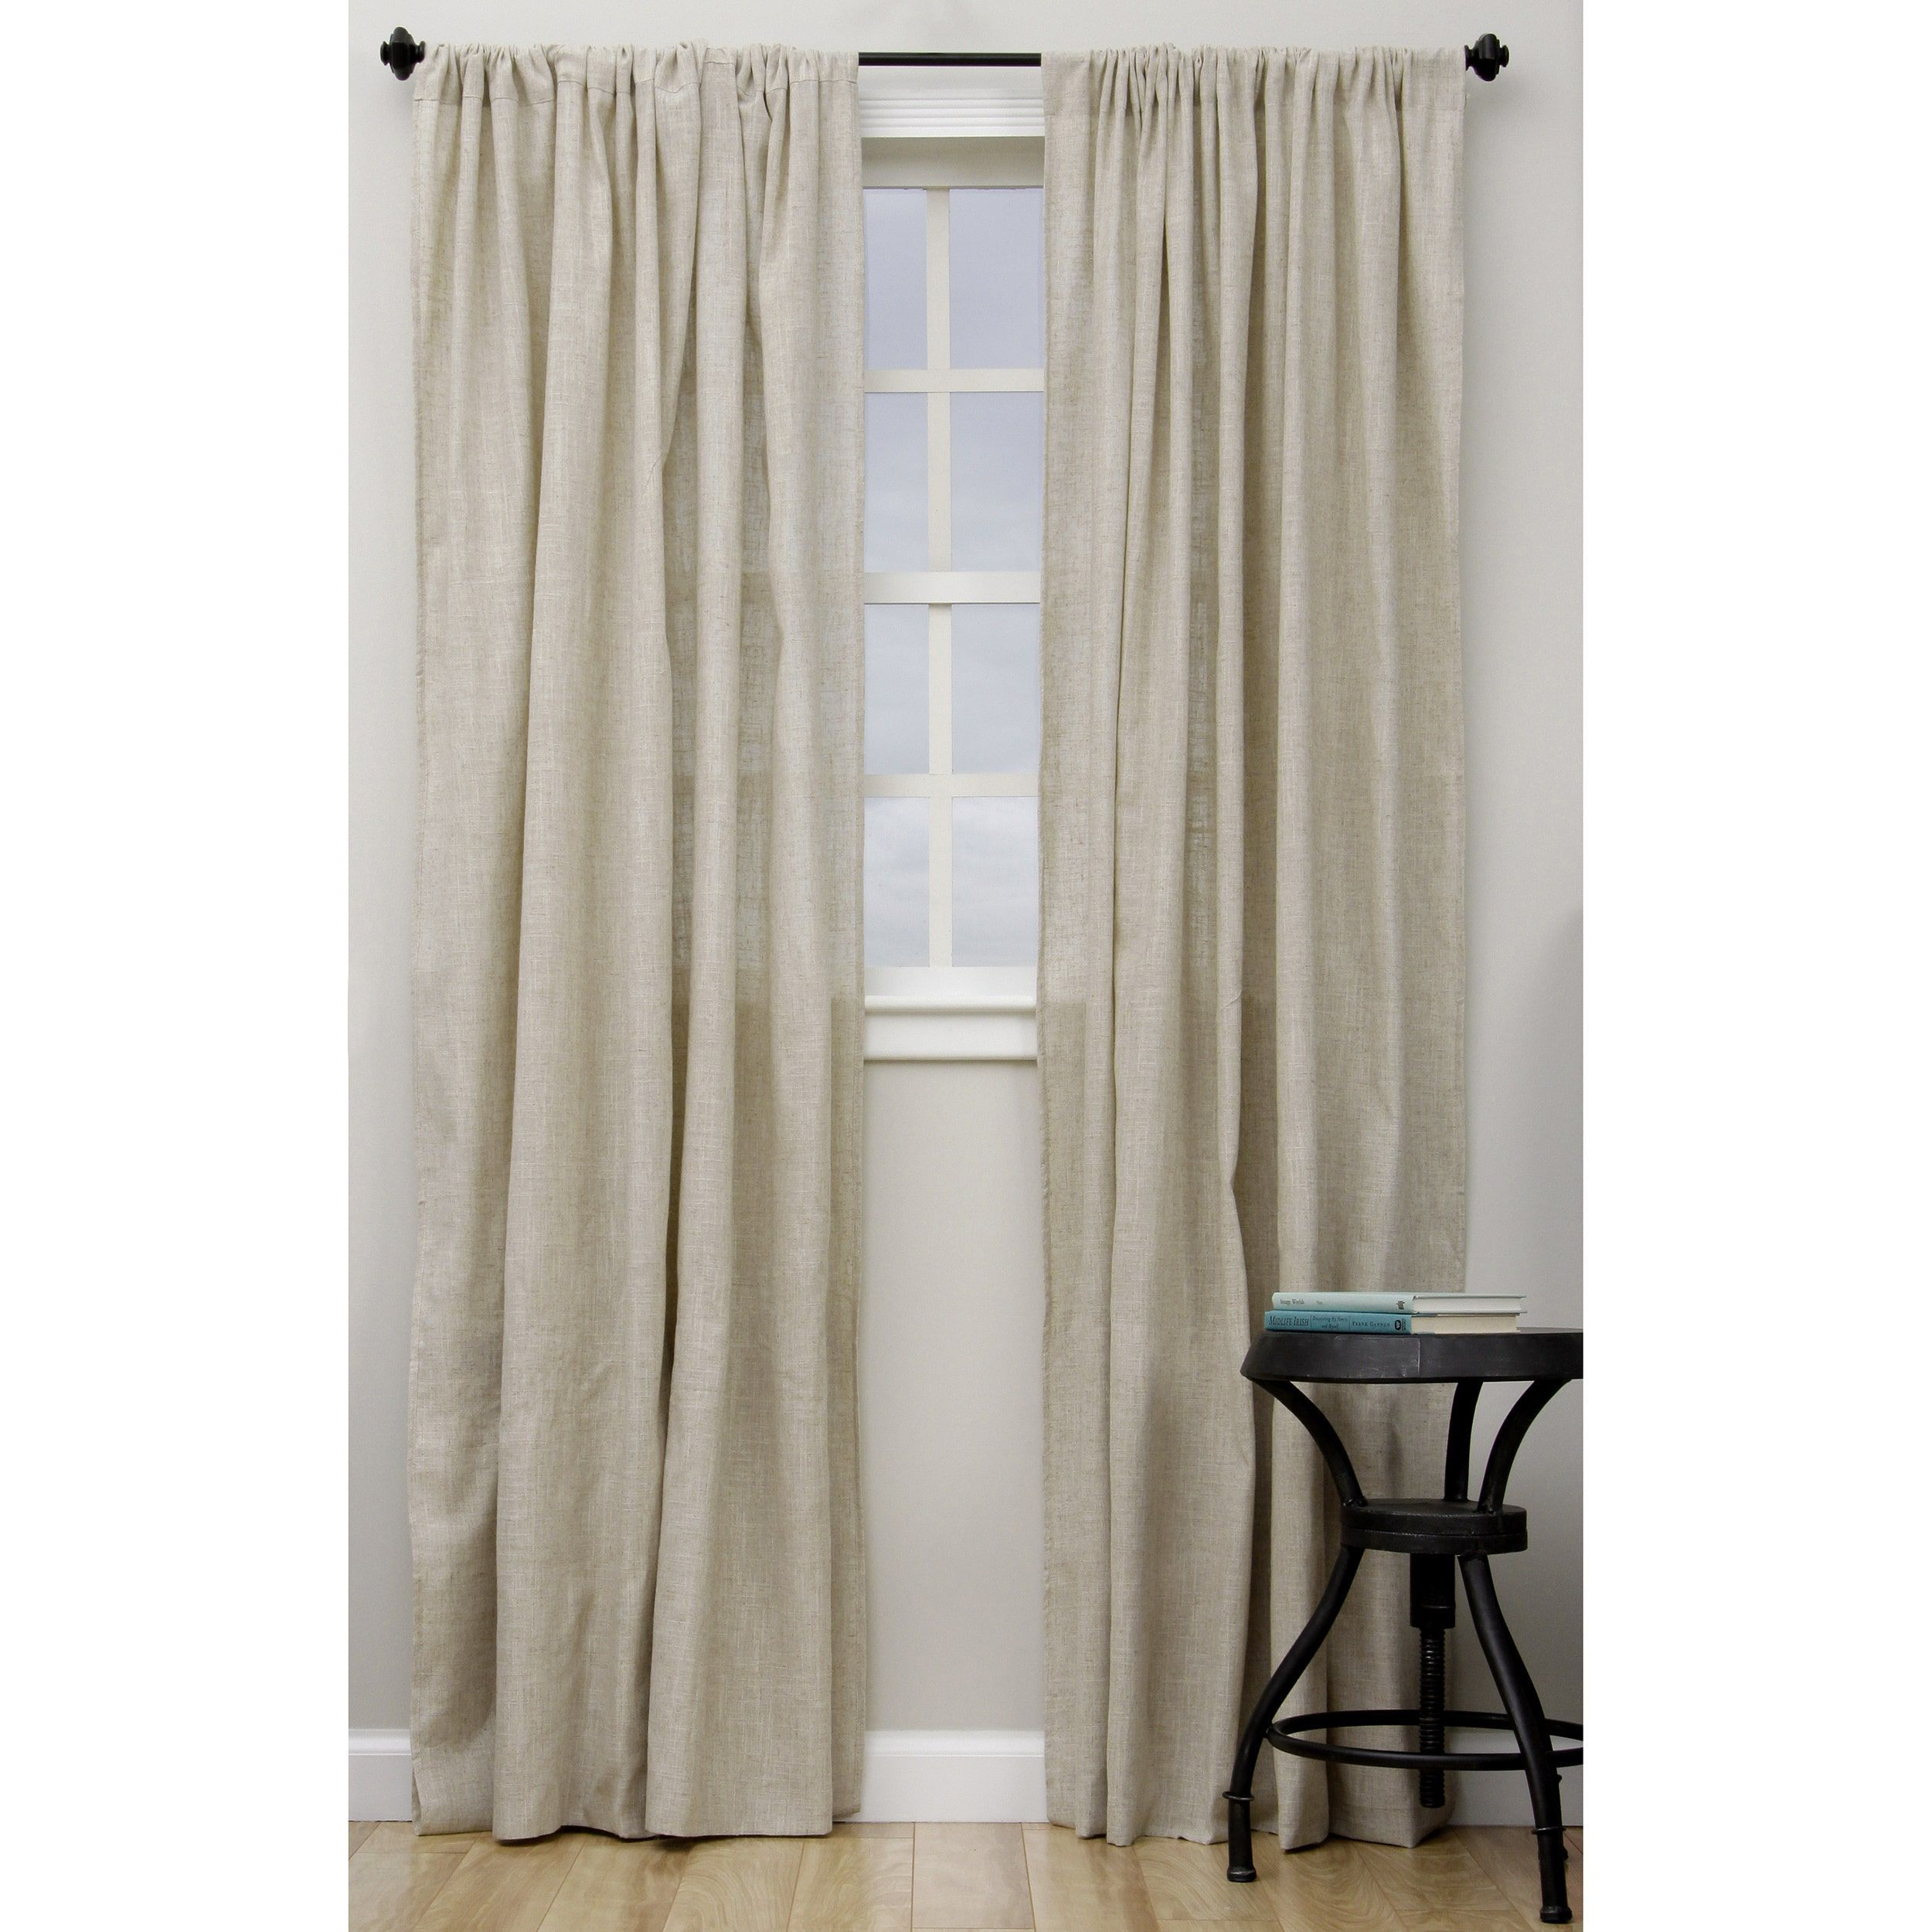 Saro Classic Linen Blend Curtain Panel Size 57 X 108 In